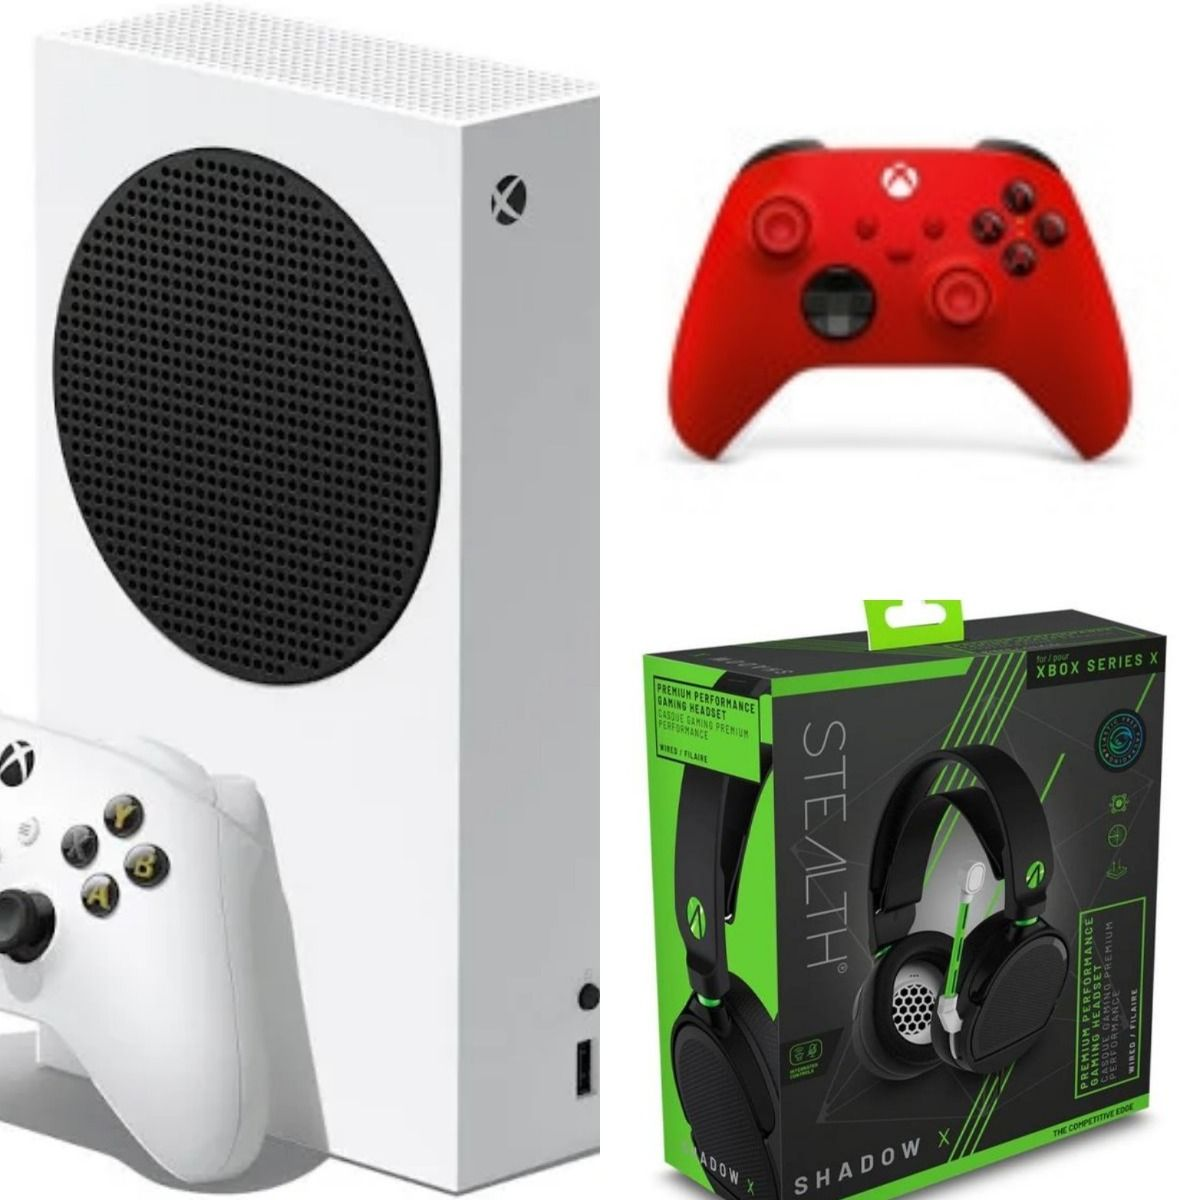 Xbox Series S All Digital Console + Microsoft Official Xbox Series X/S Wireless Controller - Pulse Red (Xbox Series X/S) + Series X Stealth Headset Shadow X